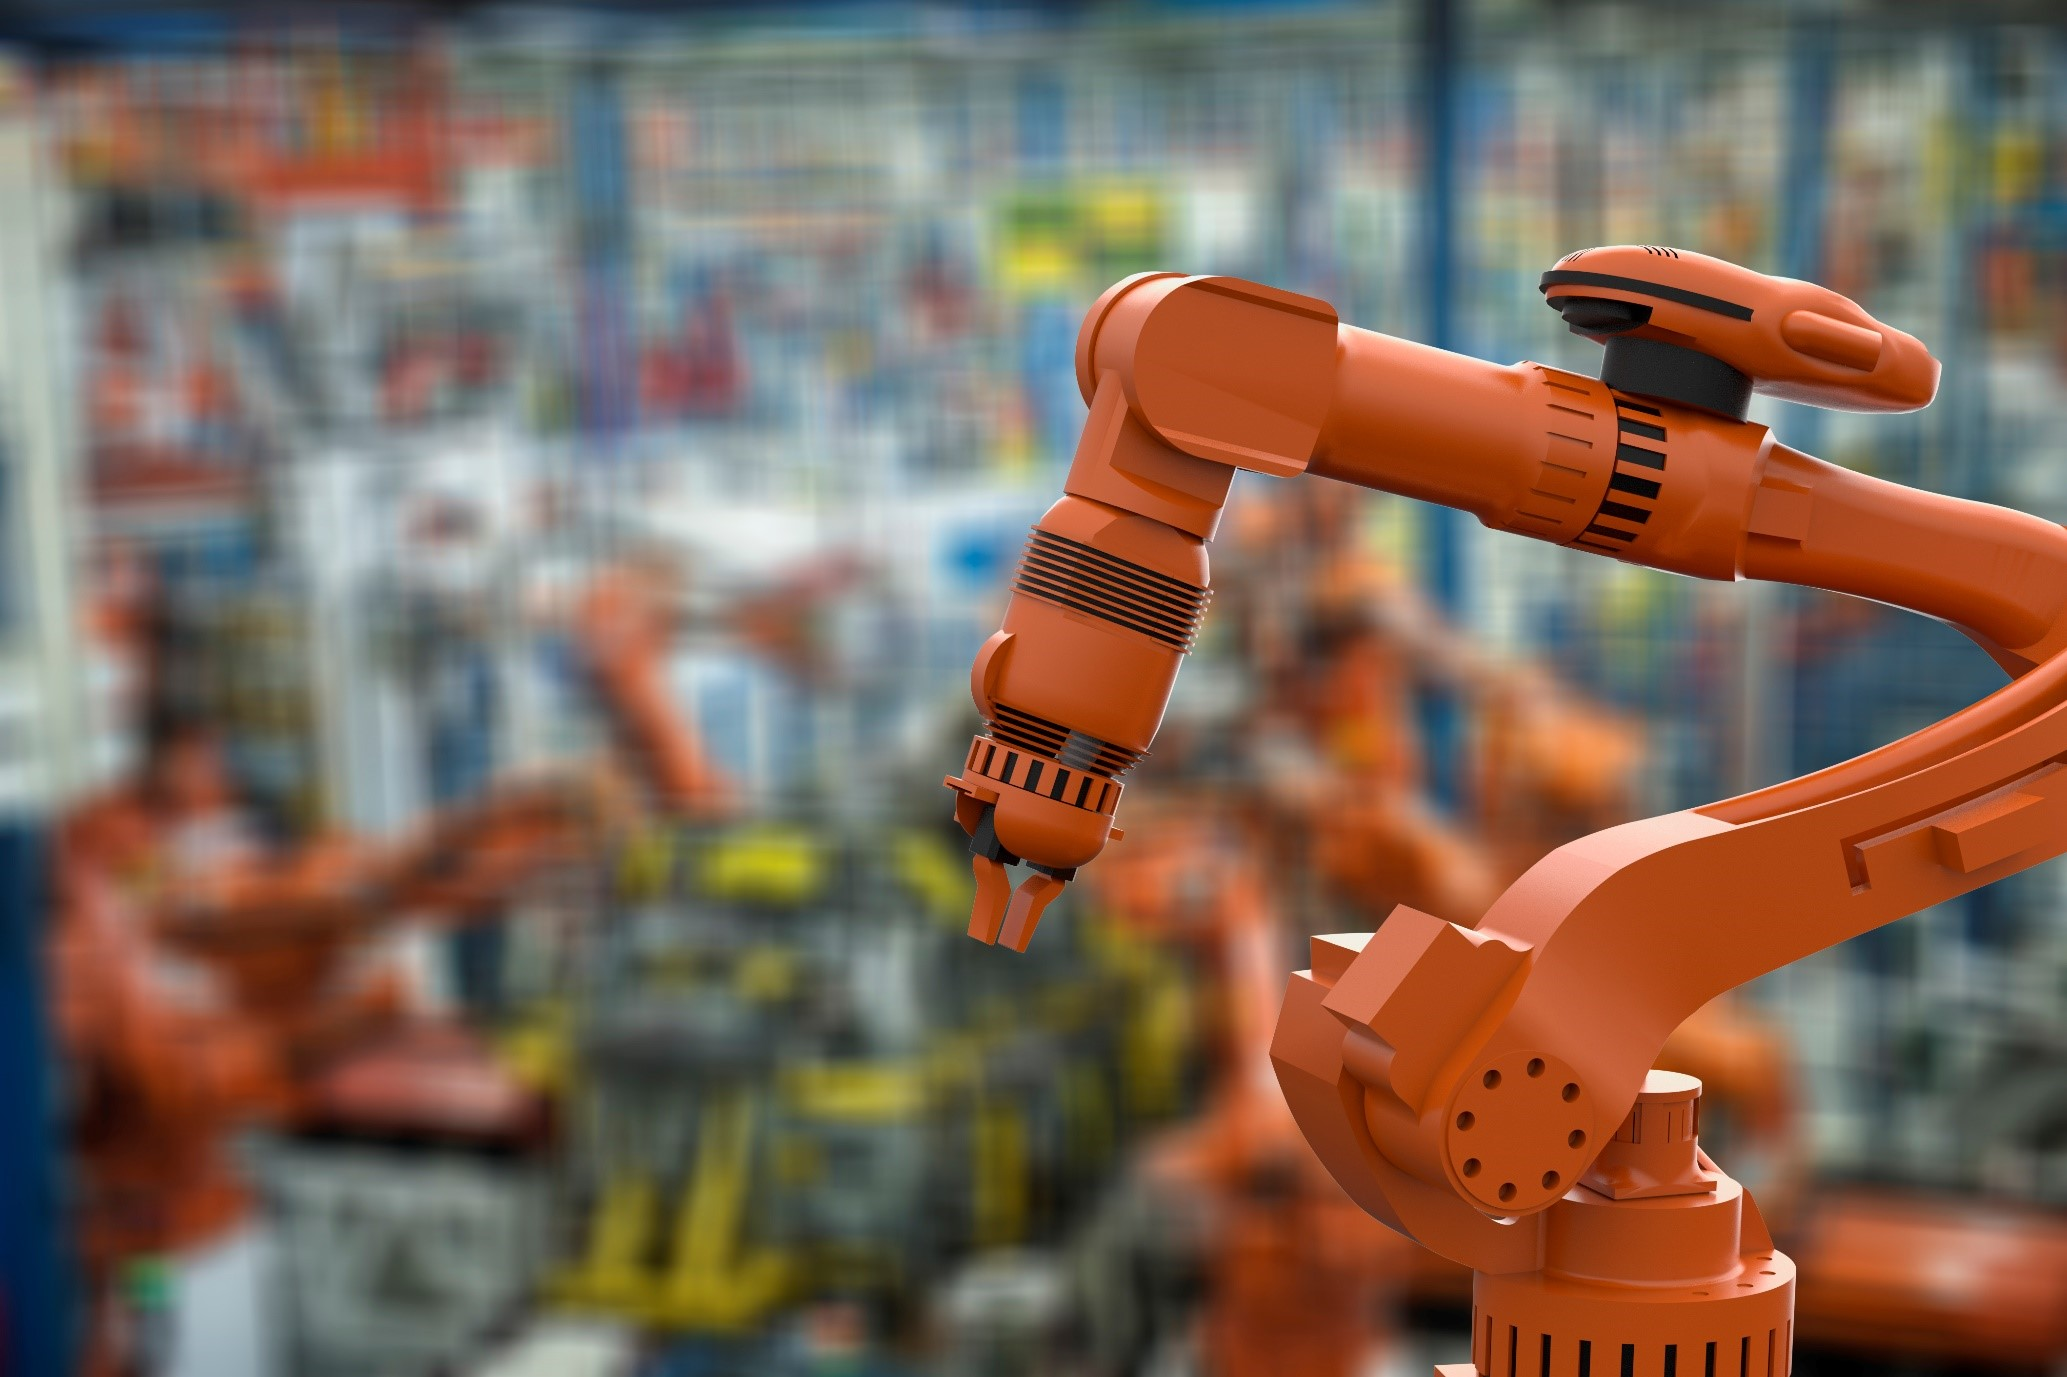 developing-artificial-intelligence-for-smart-factory